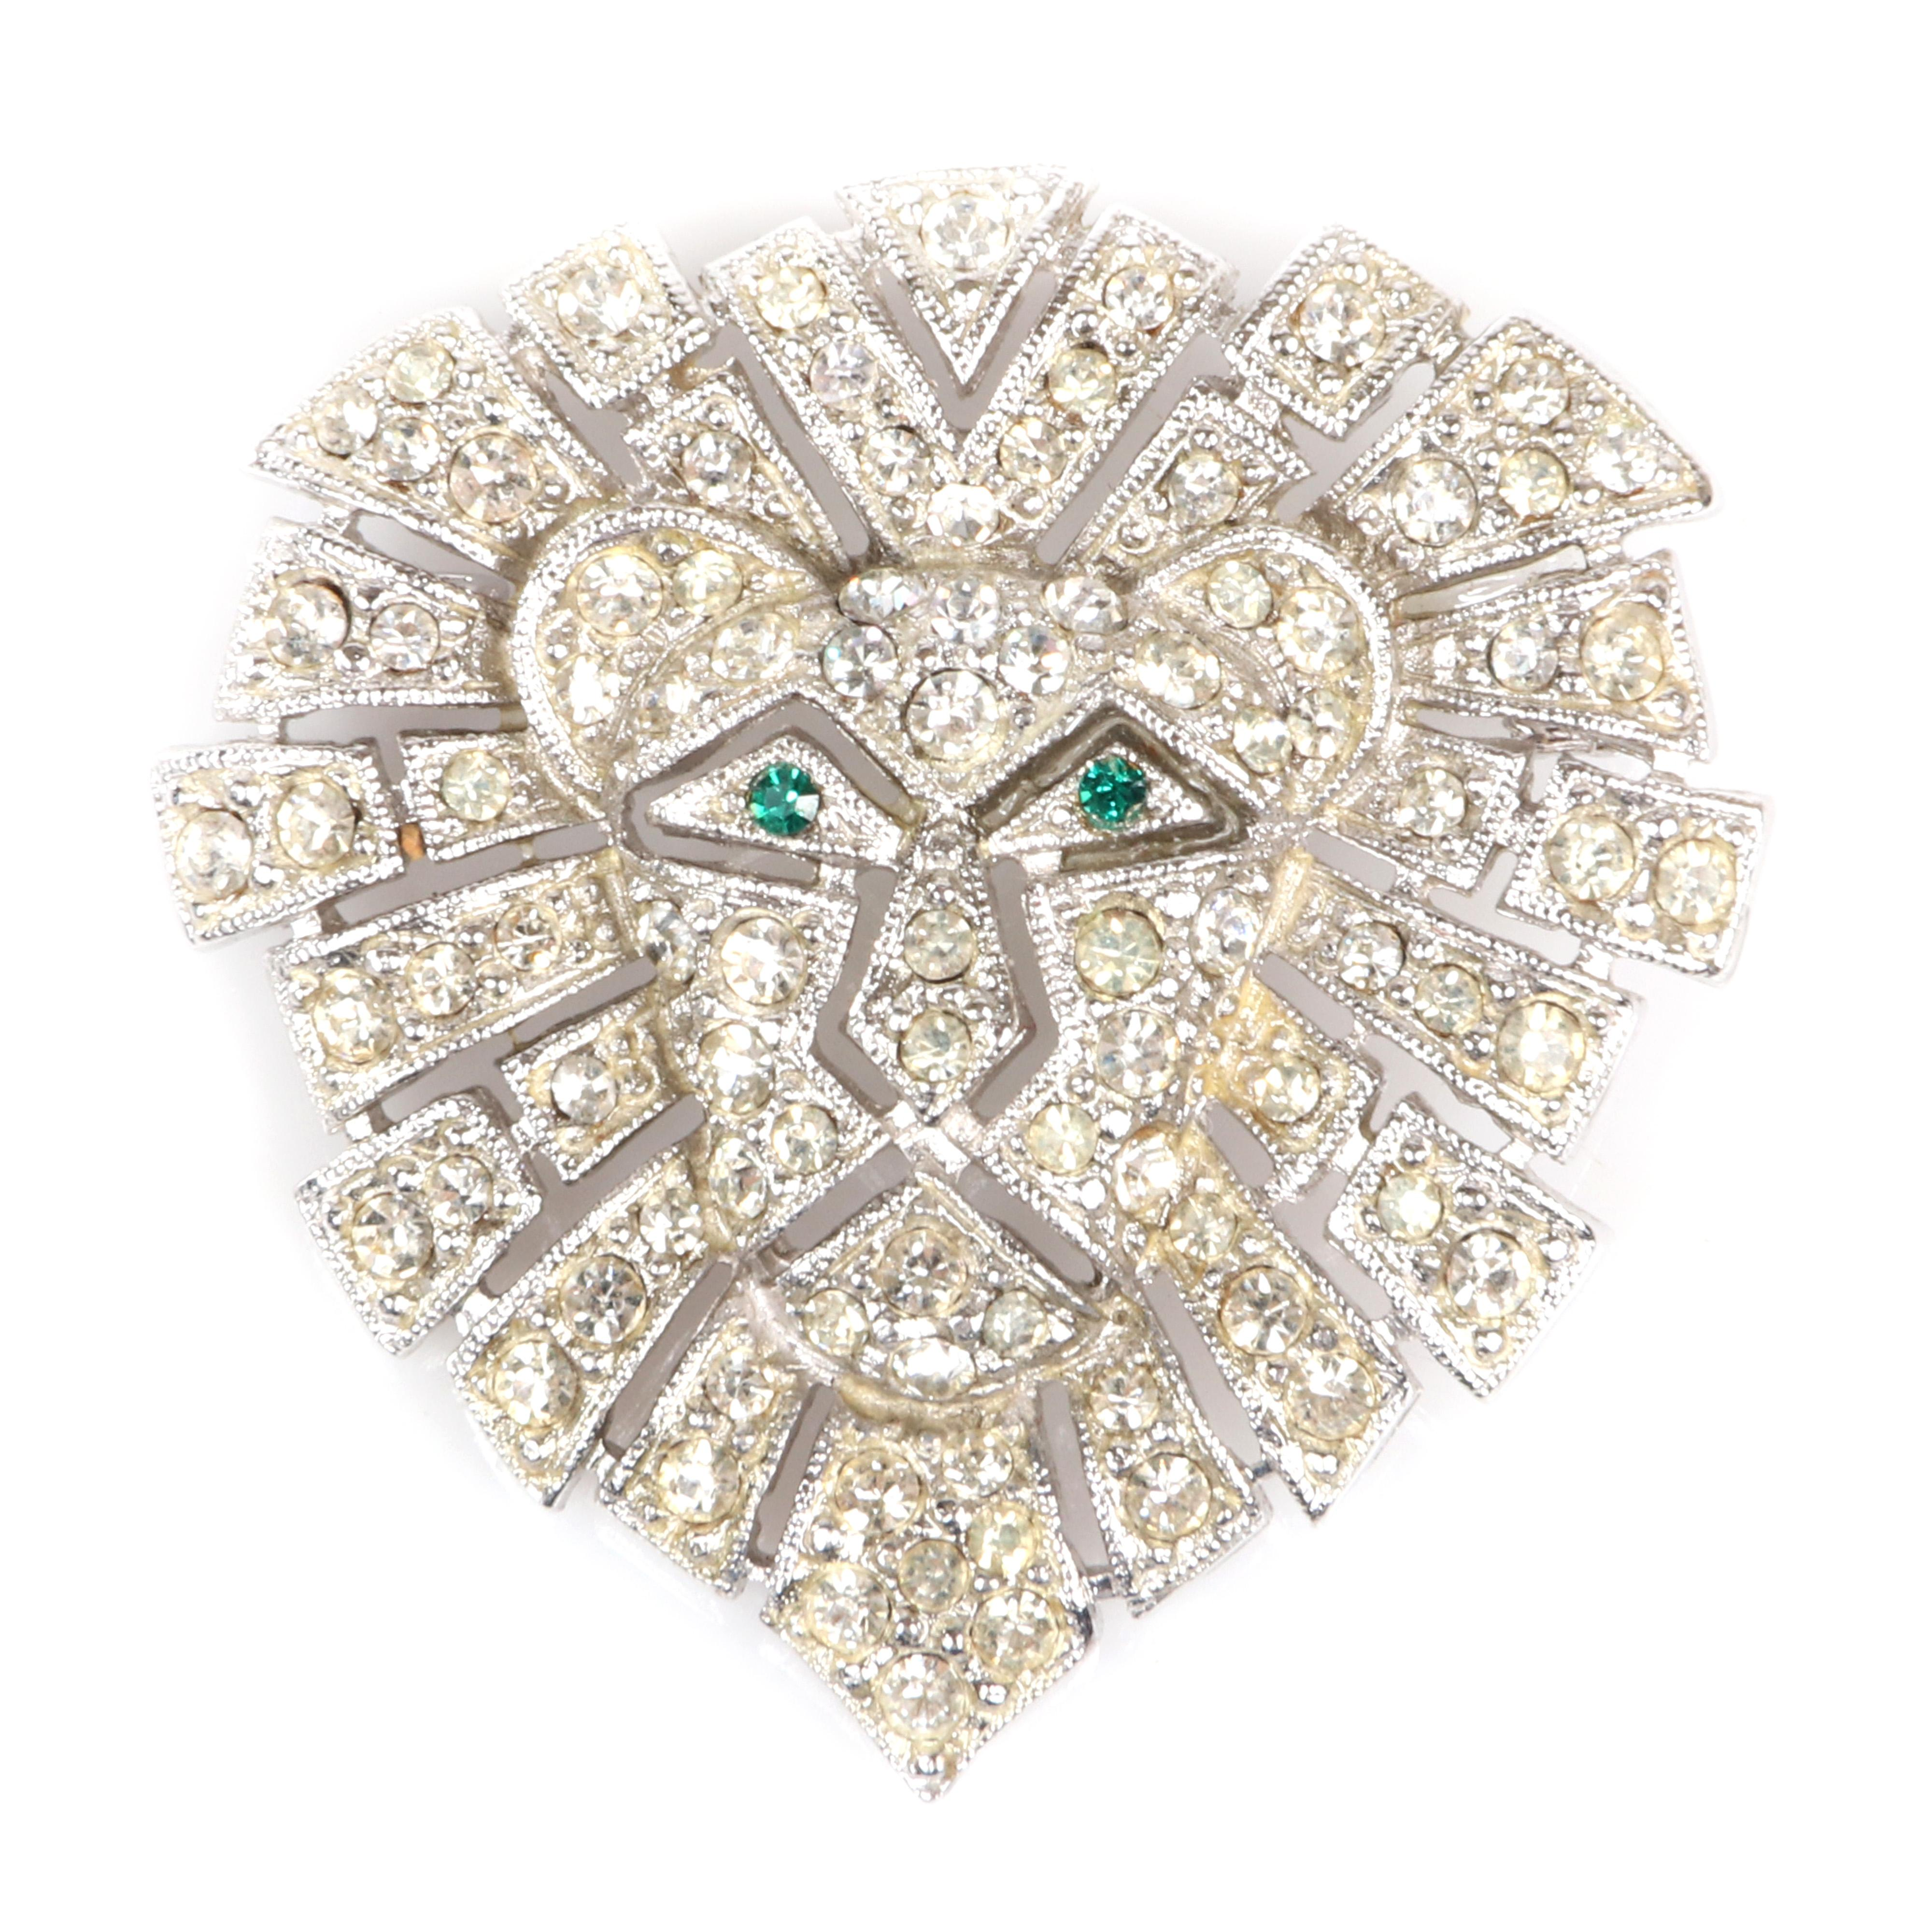 """Eisenberg Original rhodium plated lion's face brooch, marked Block E. with emerald rhinestone eyes and clear pave-set rhinestones, 1950s. 1 1/2"""" x 1 1/2"""""""